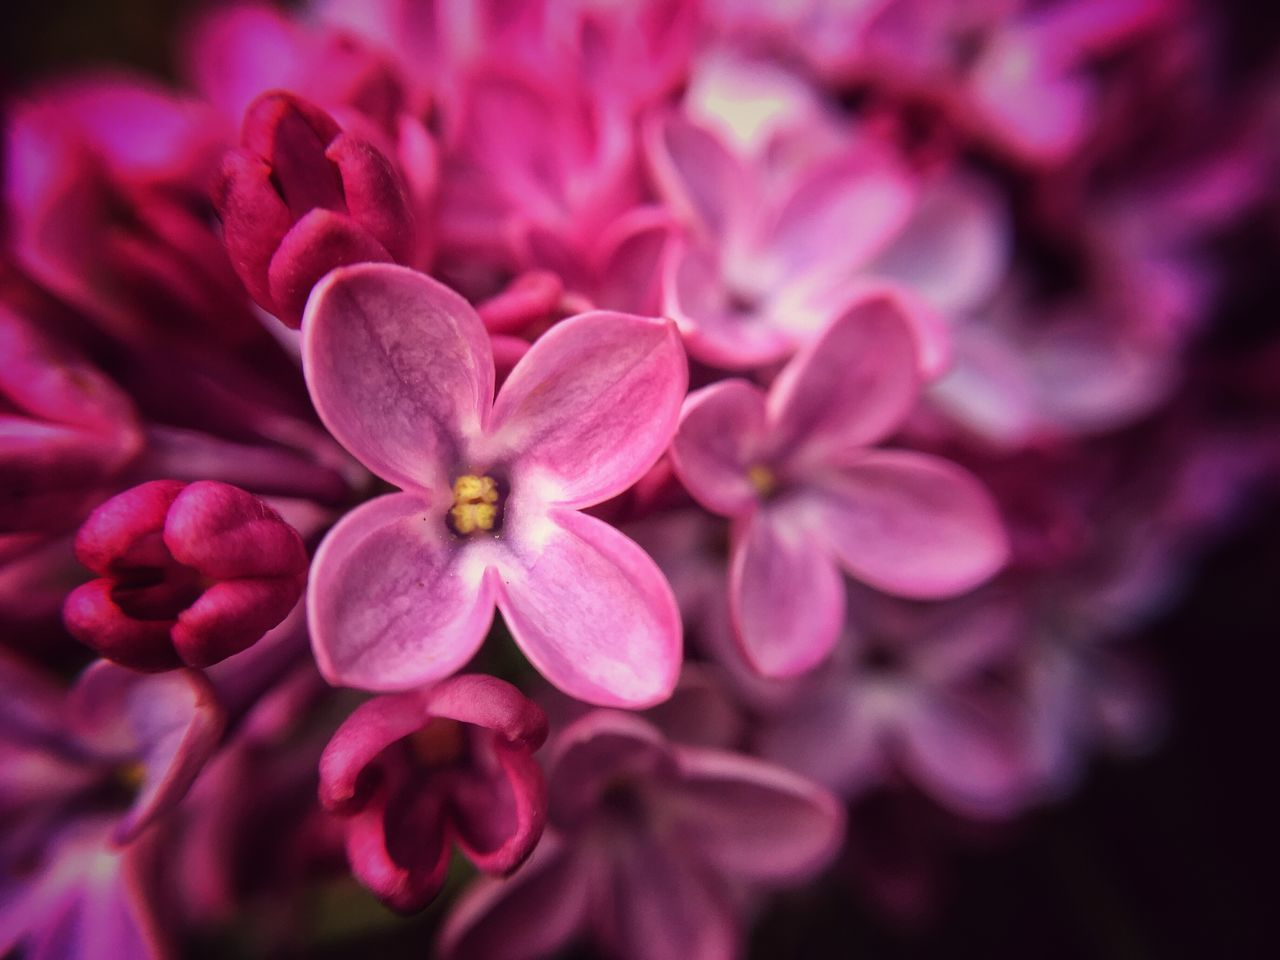 flower, petal, nature, blooming, growth, beauty in nature, no people, close-up, flower head, outdoors, day